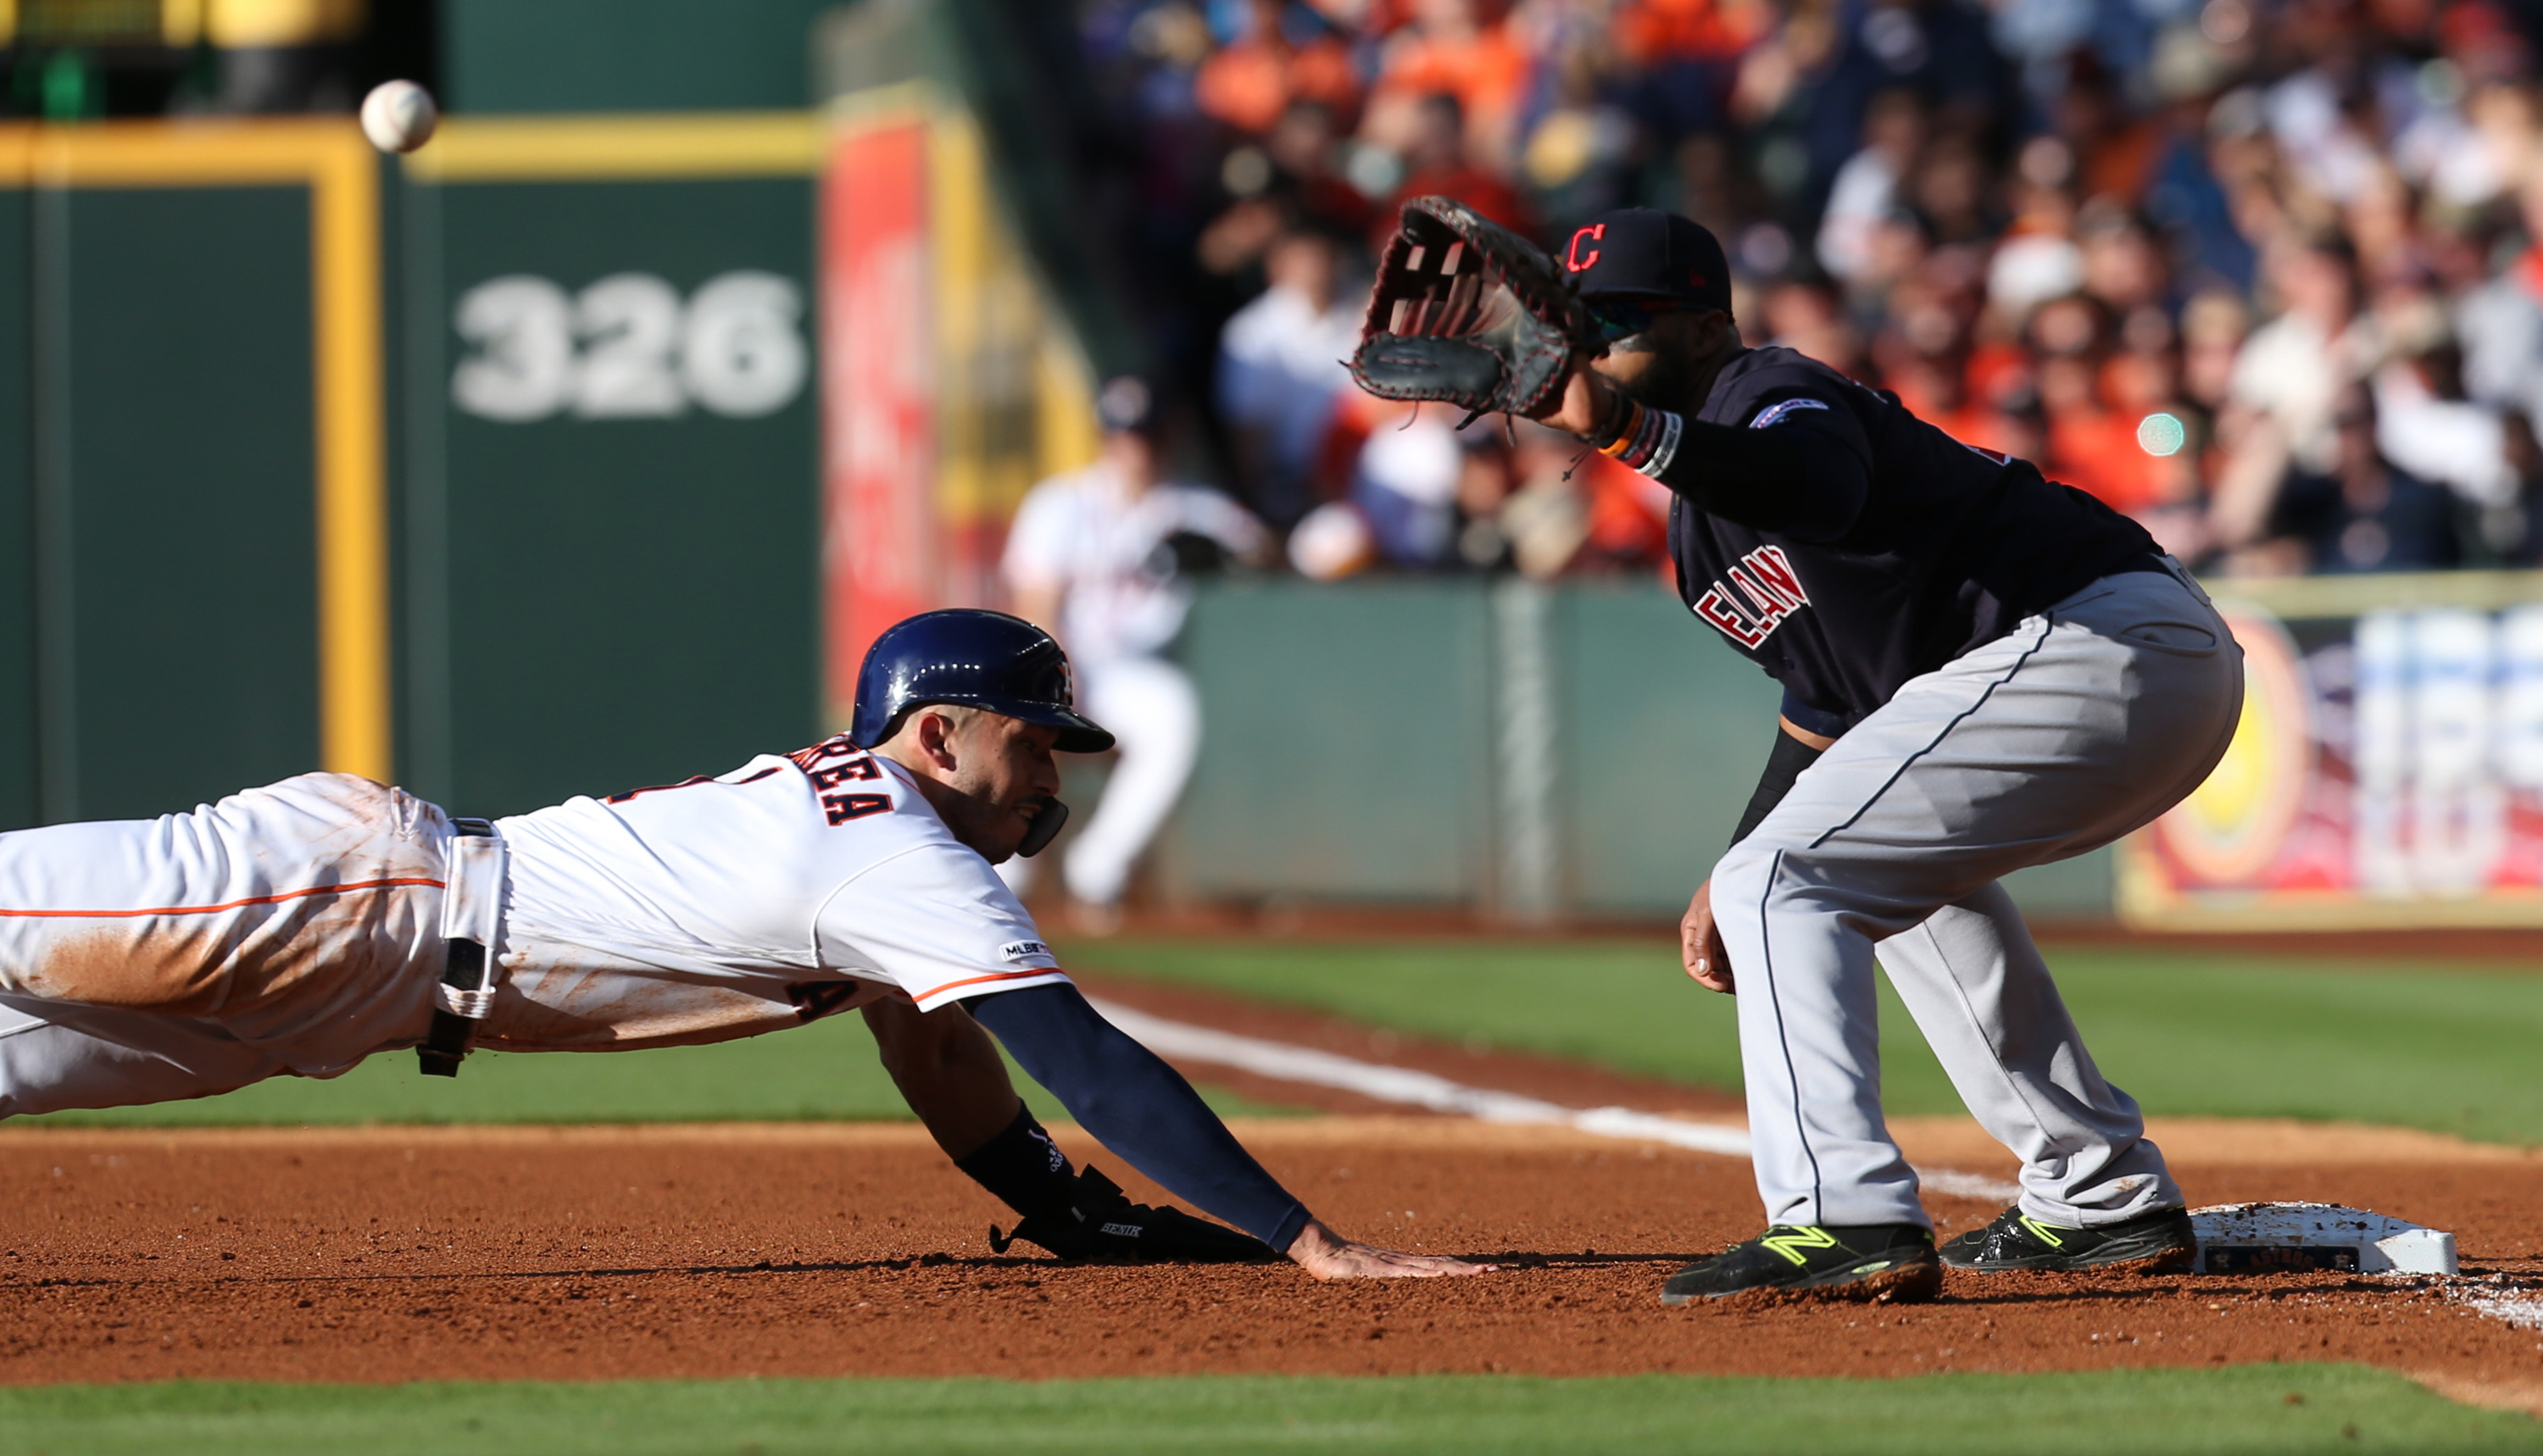 MLB: Cleveland Indians at Houston Astros